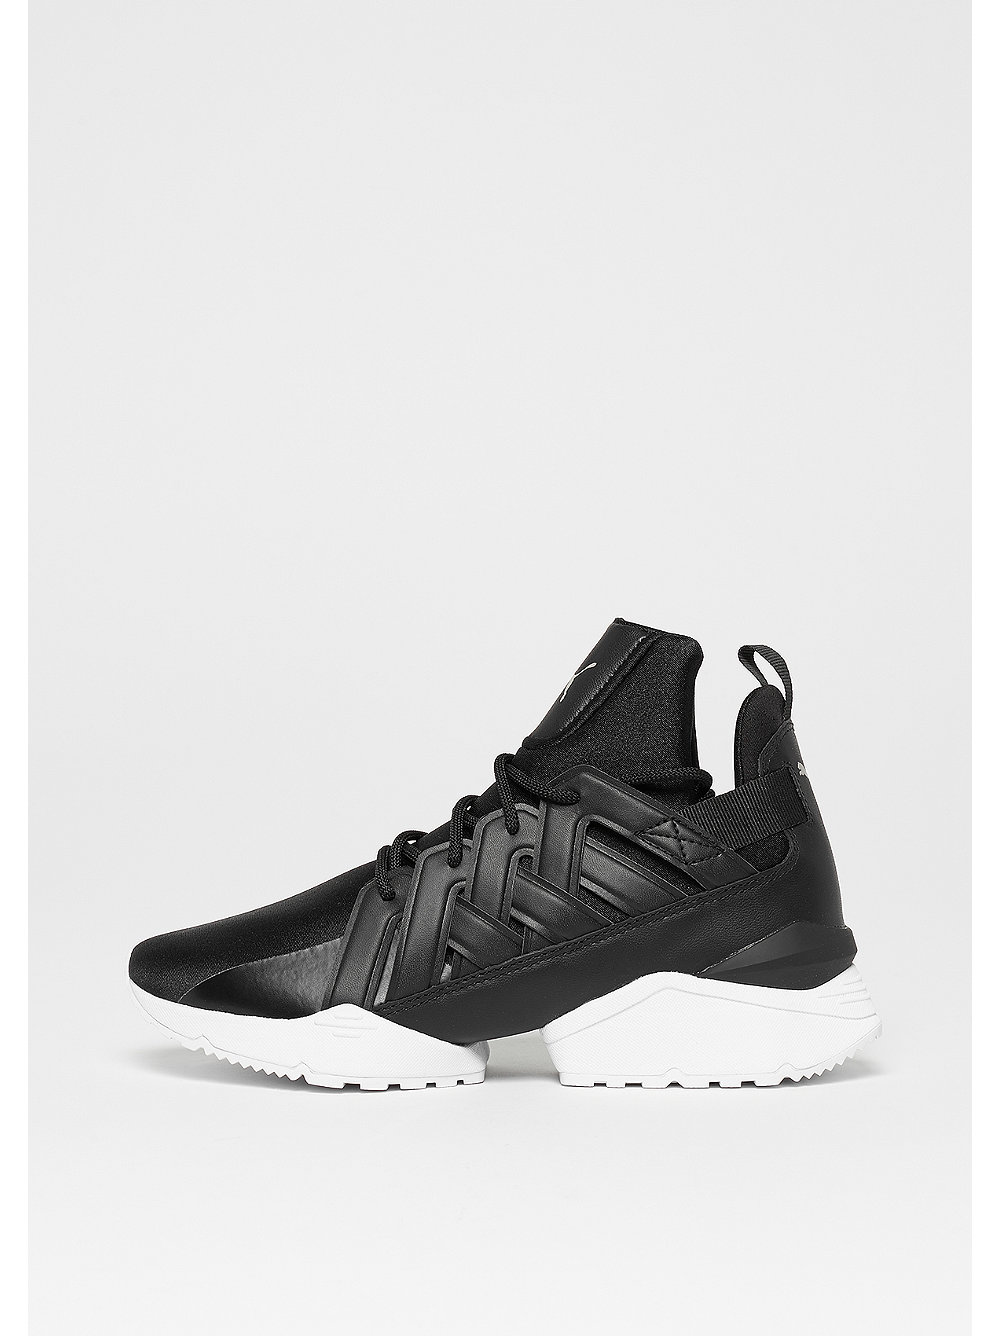 Puma Muse Echo Satin EP puma black-puma white